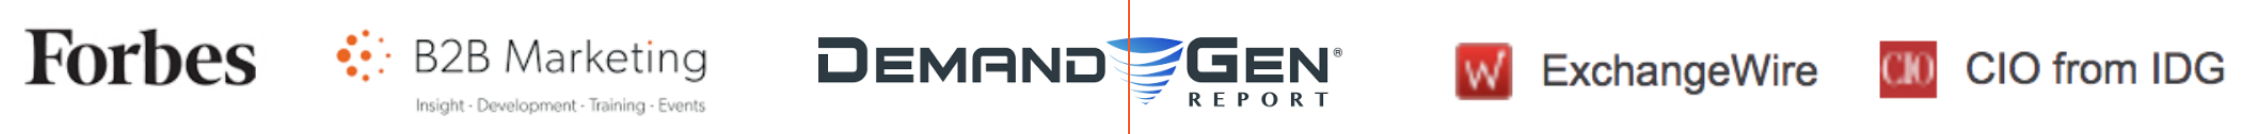 Logos for Forbes, B2B Marketing, Demand Gen, ExchangeWire, CIO from IDG